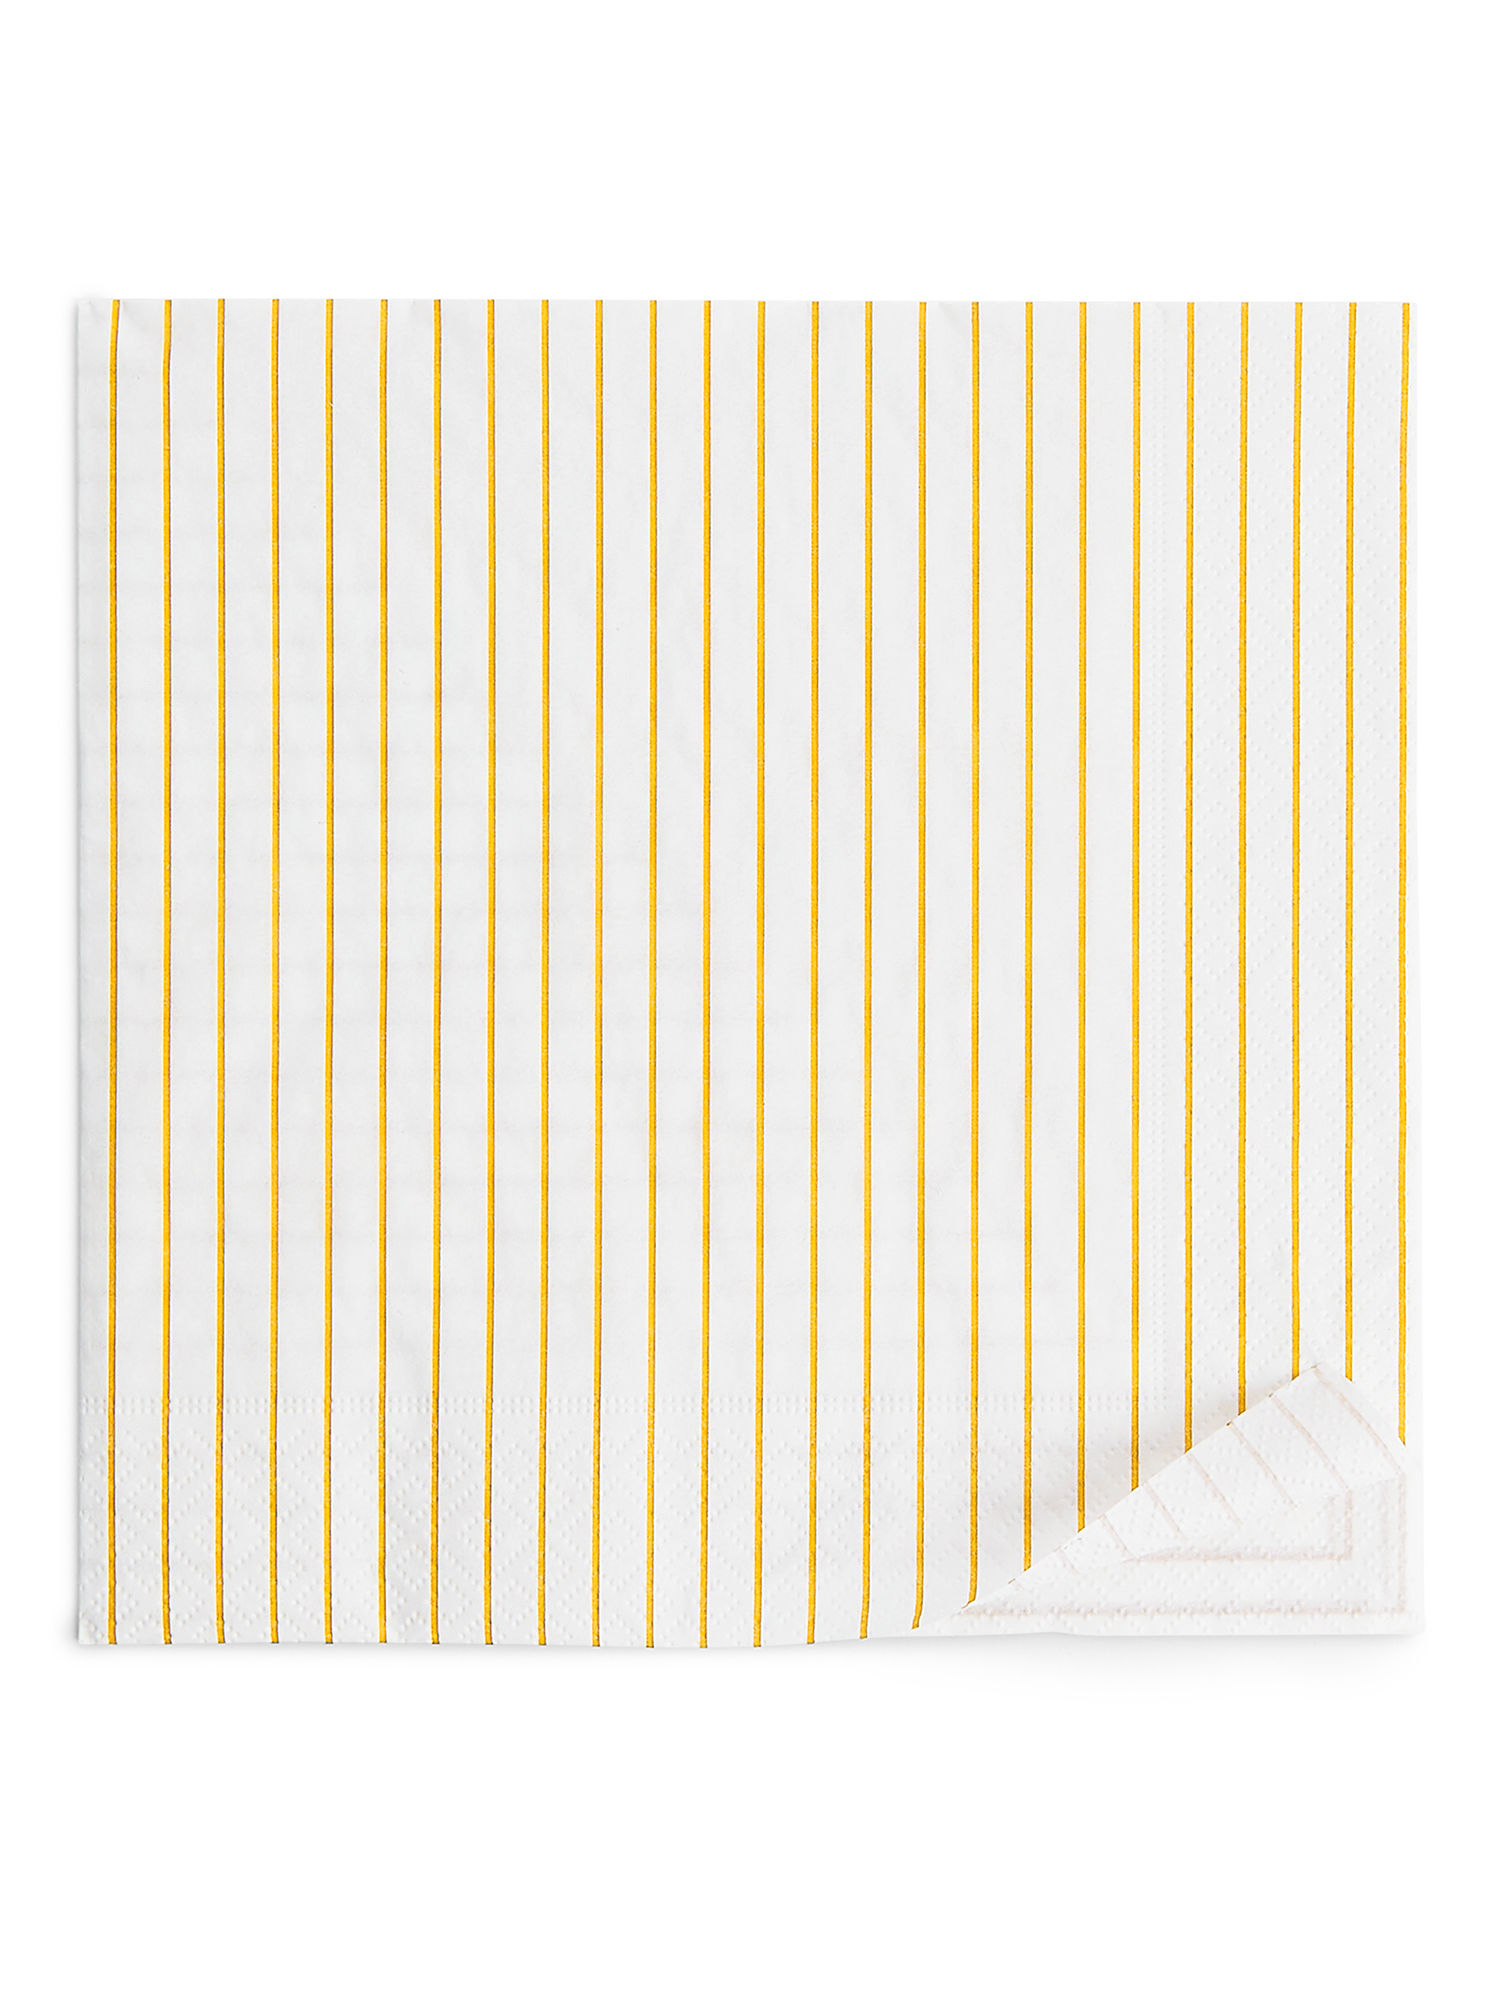 Fabric Swatch image of Arket paper napkins in yellow